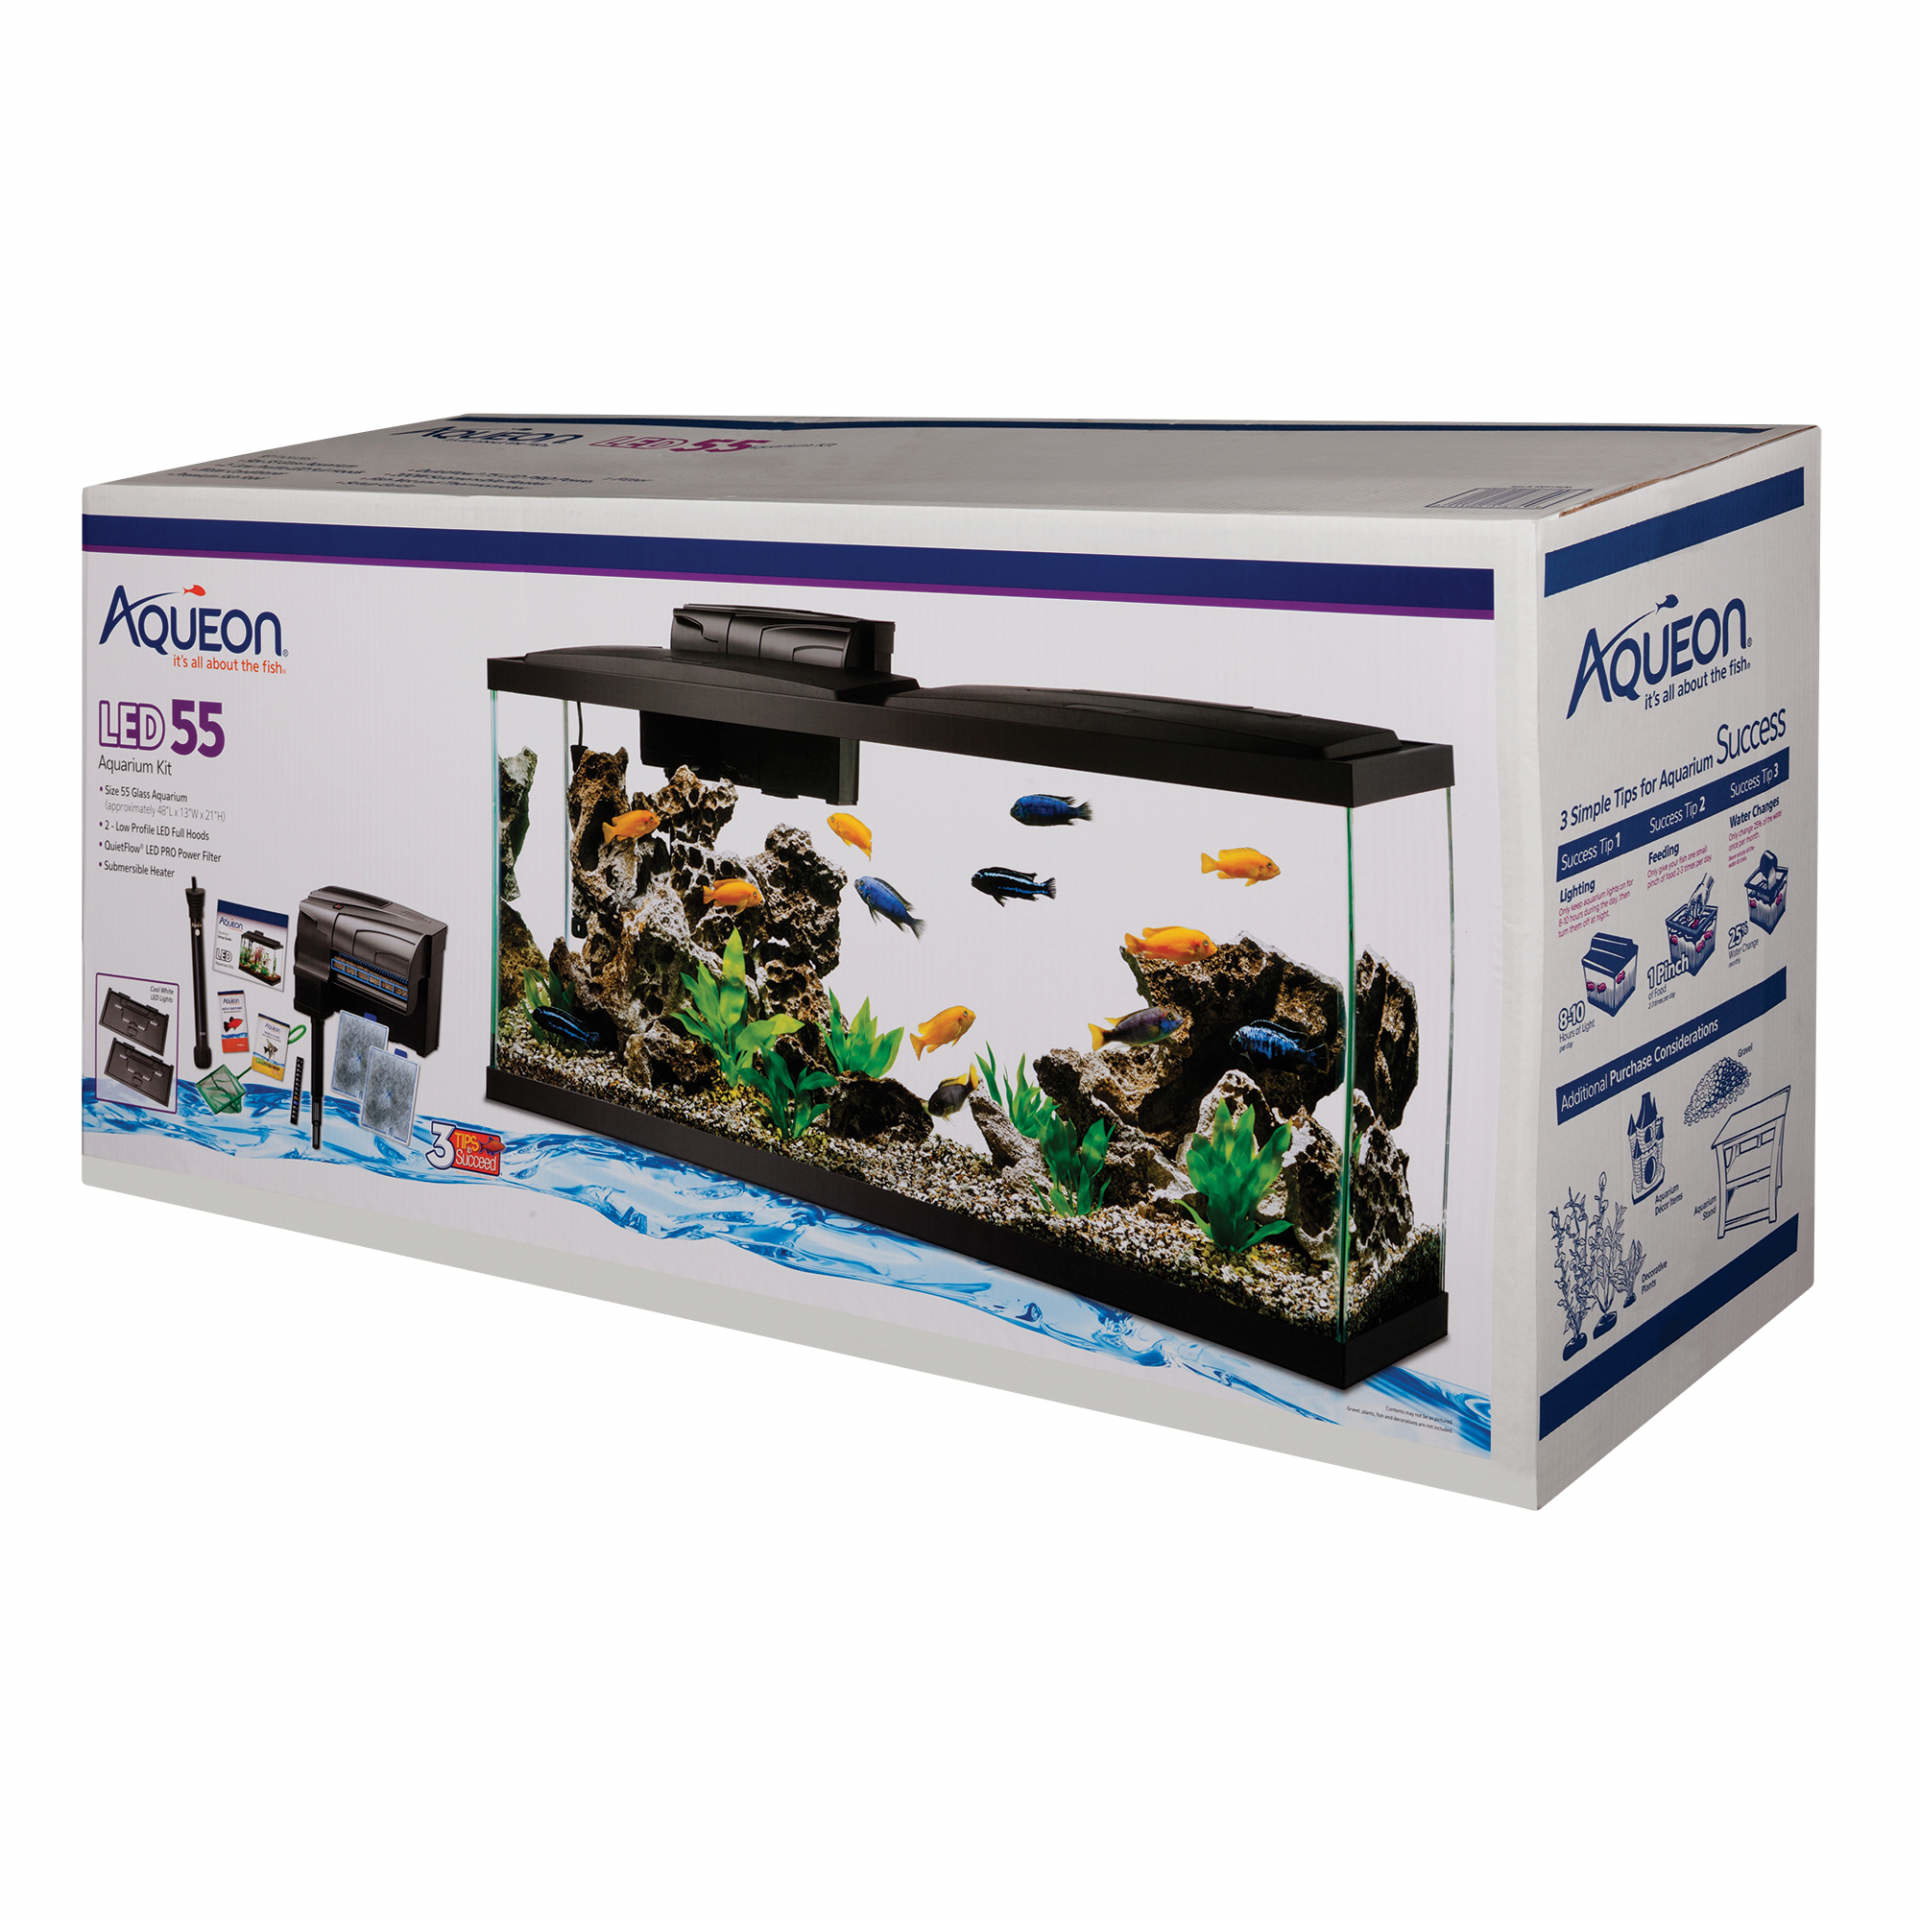 Aqueon Aqueon 55 gallon LED starter kit prepriced